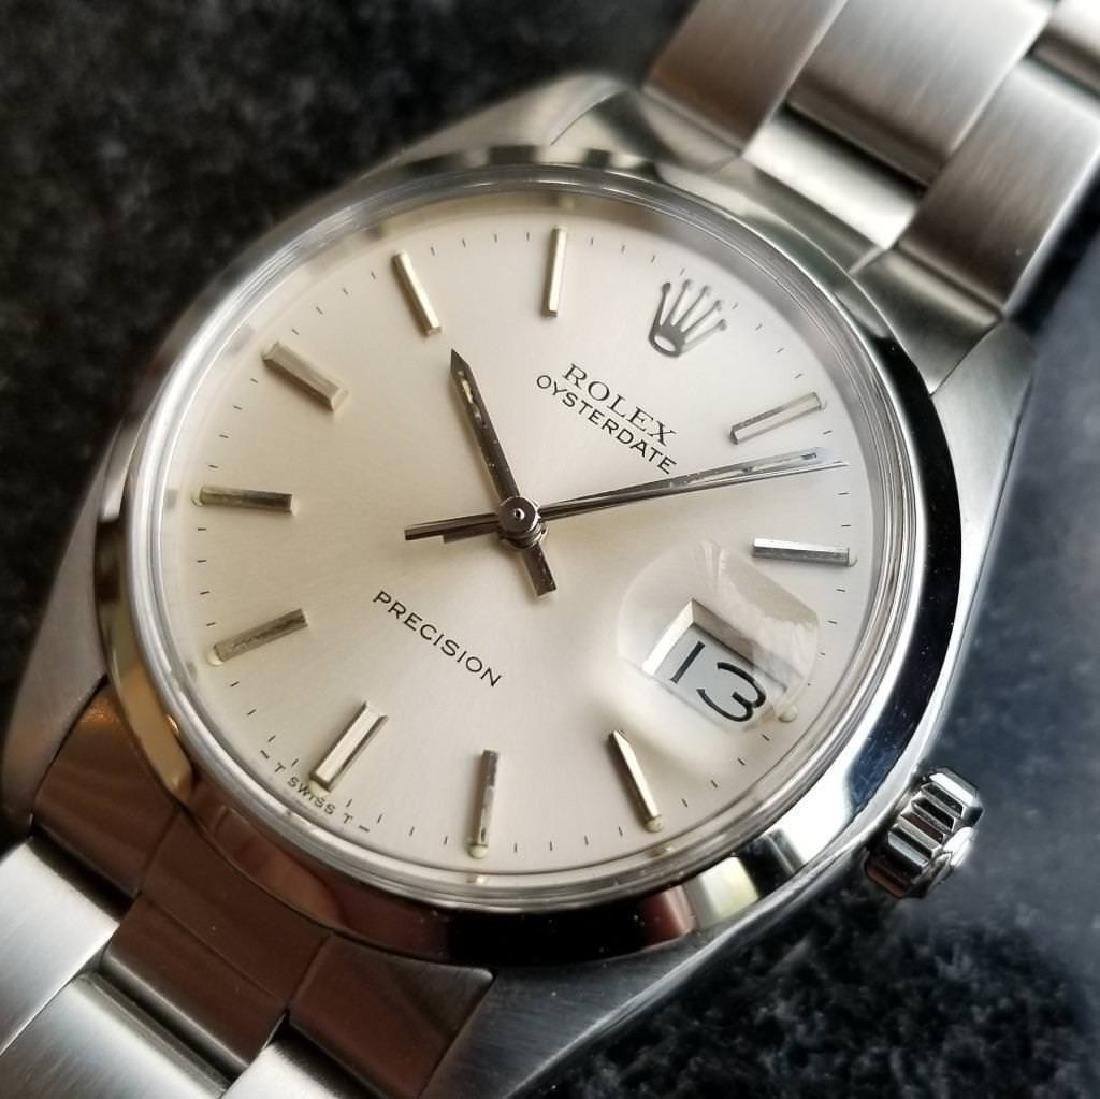 Vintage 1981 Rolex 6694 Oysterdate Precision Manual